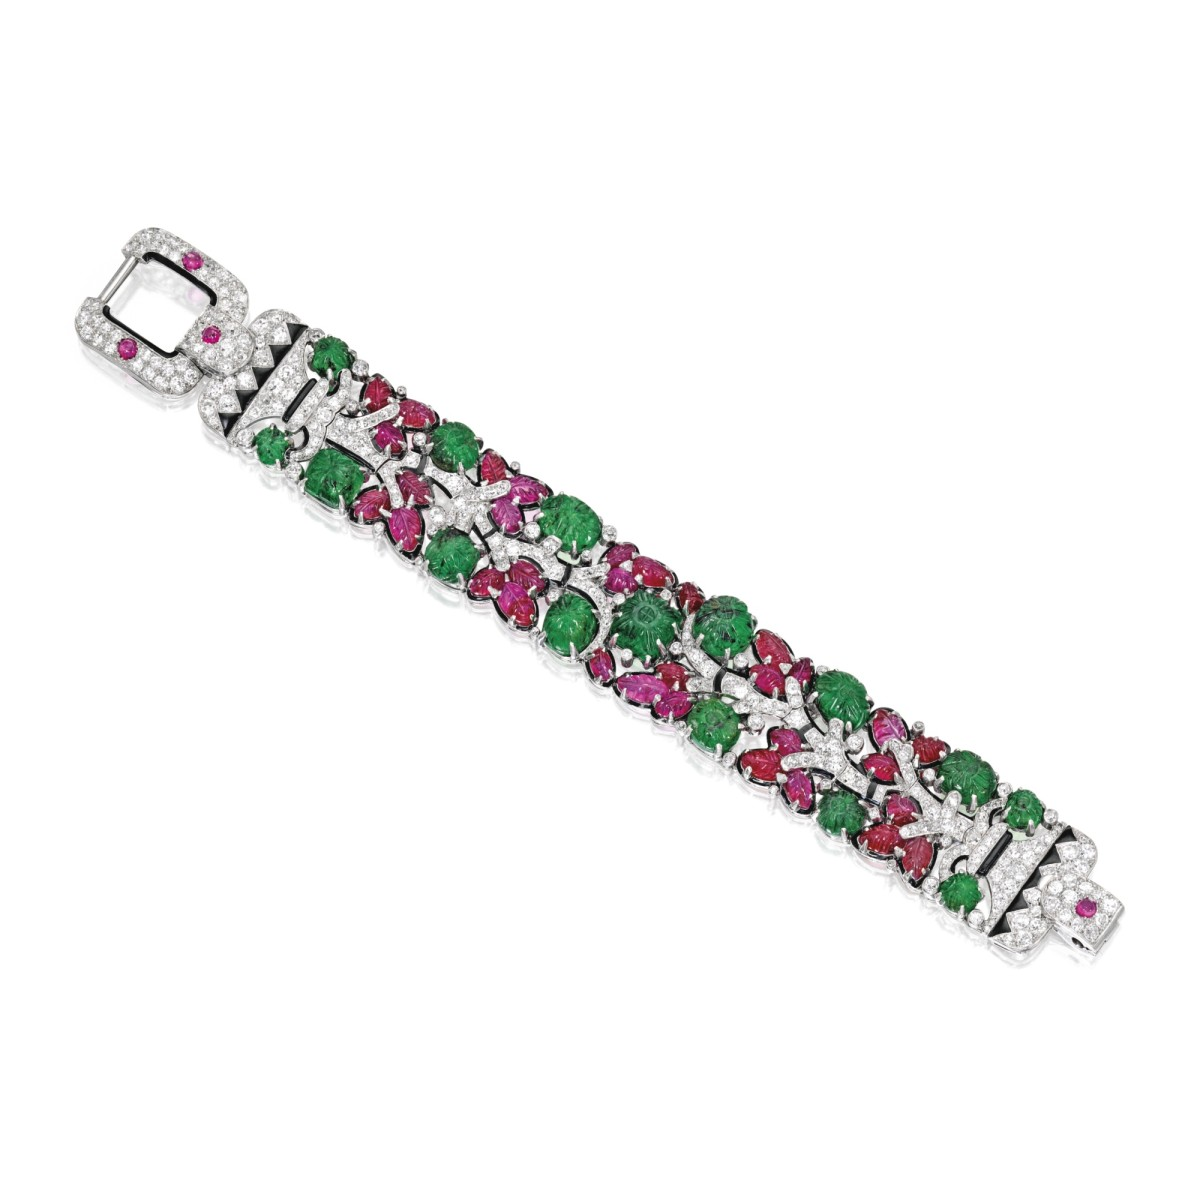 Platinum, Emerald, Ruby, Diamond and Enamel 'Tutti Frutti' Bracelet, Cartier, New York, circa 1928